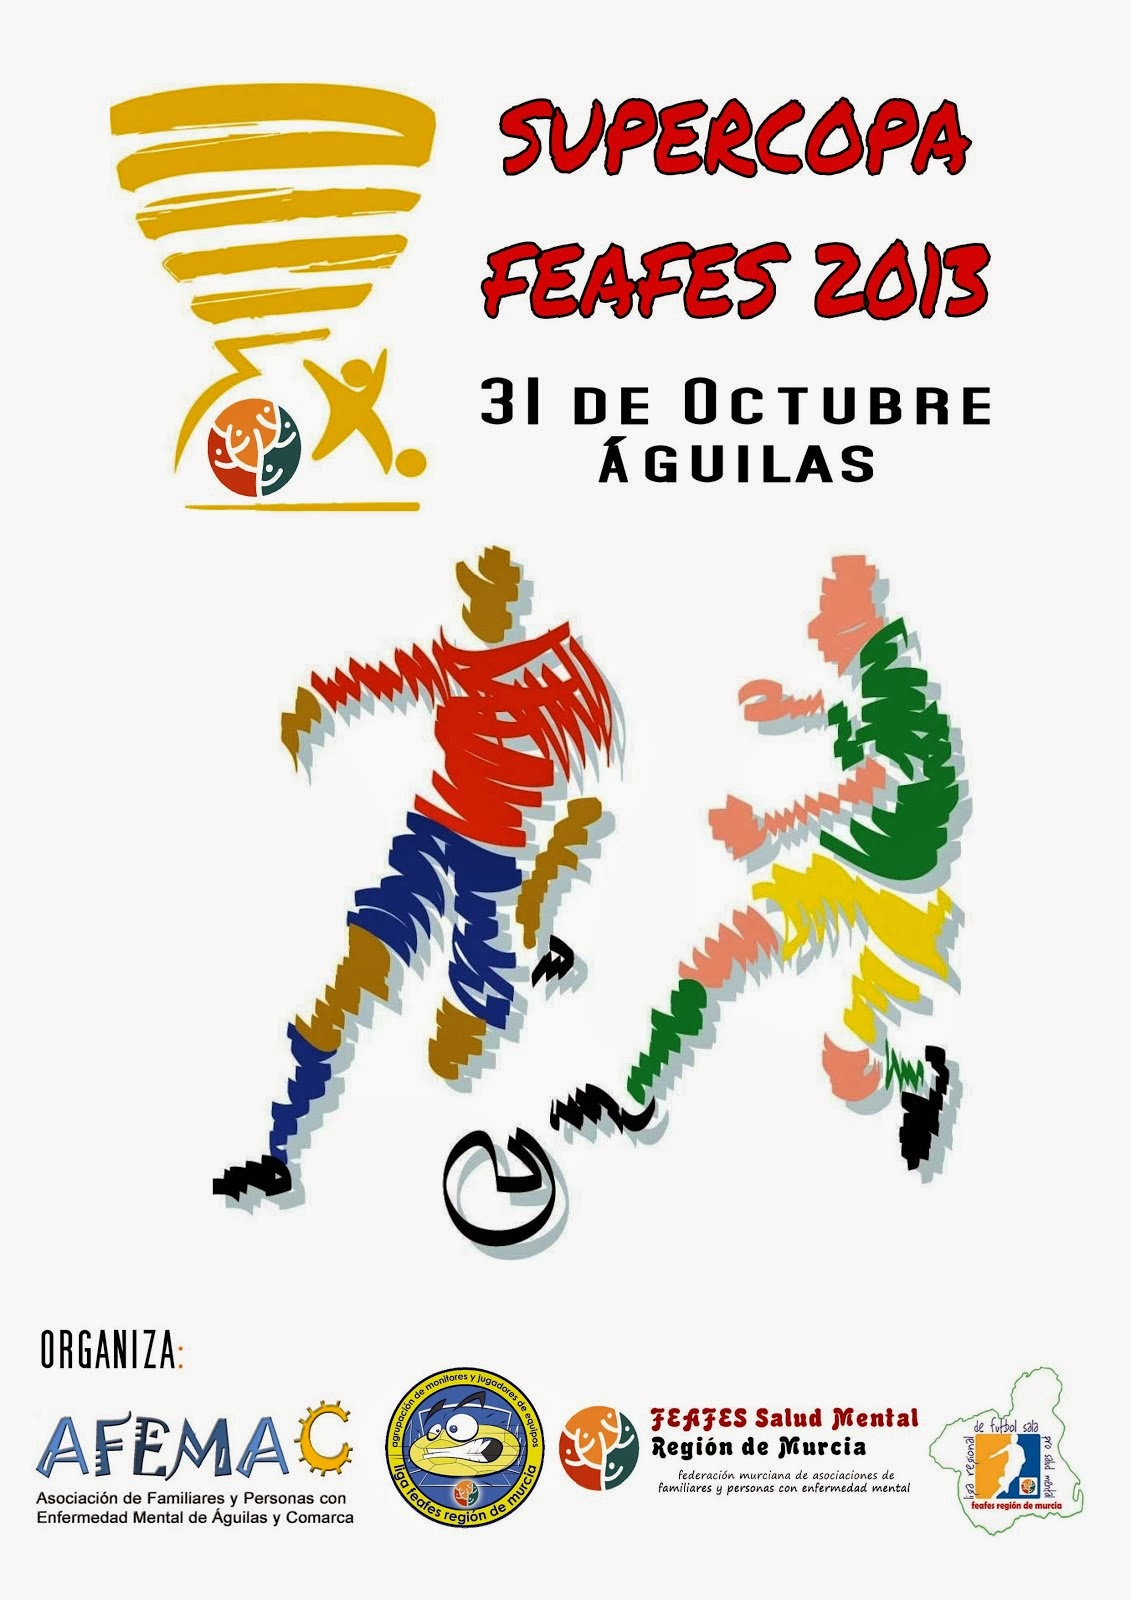 CARTEL DE LA SUPERCOPA 2013